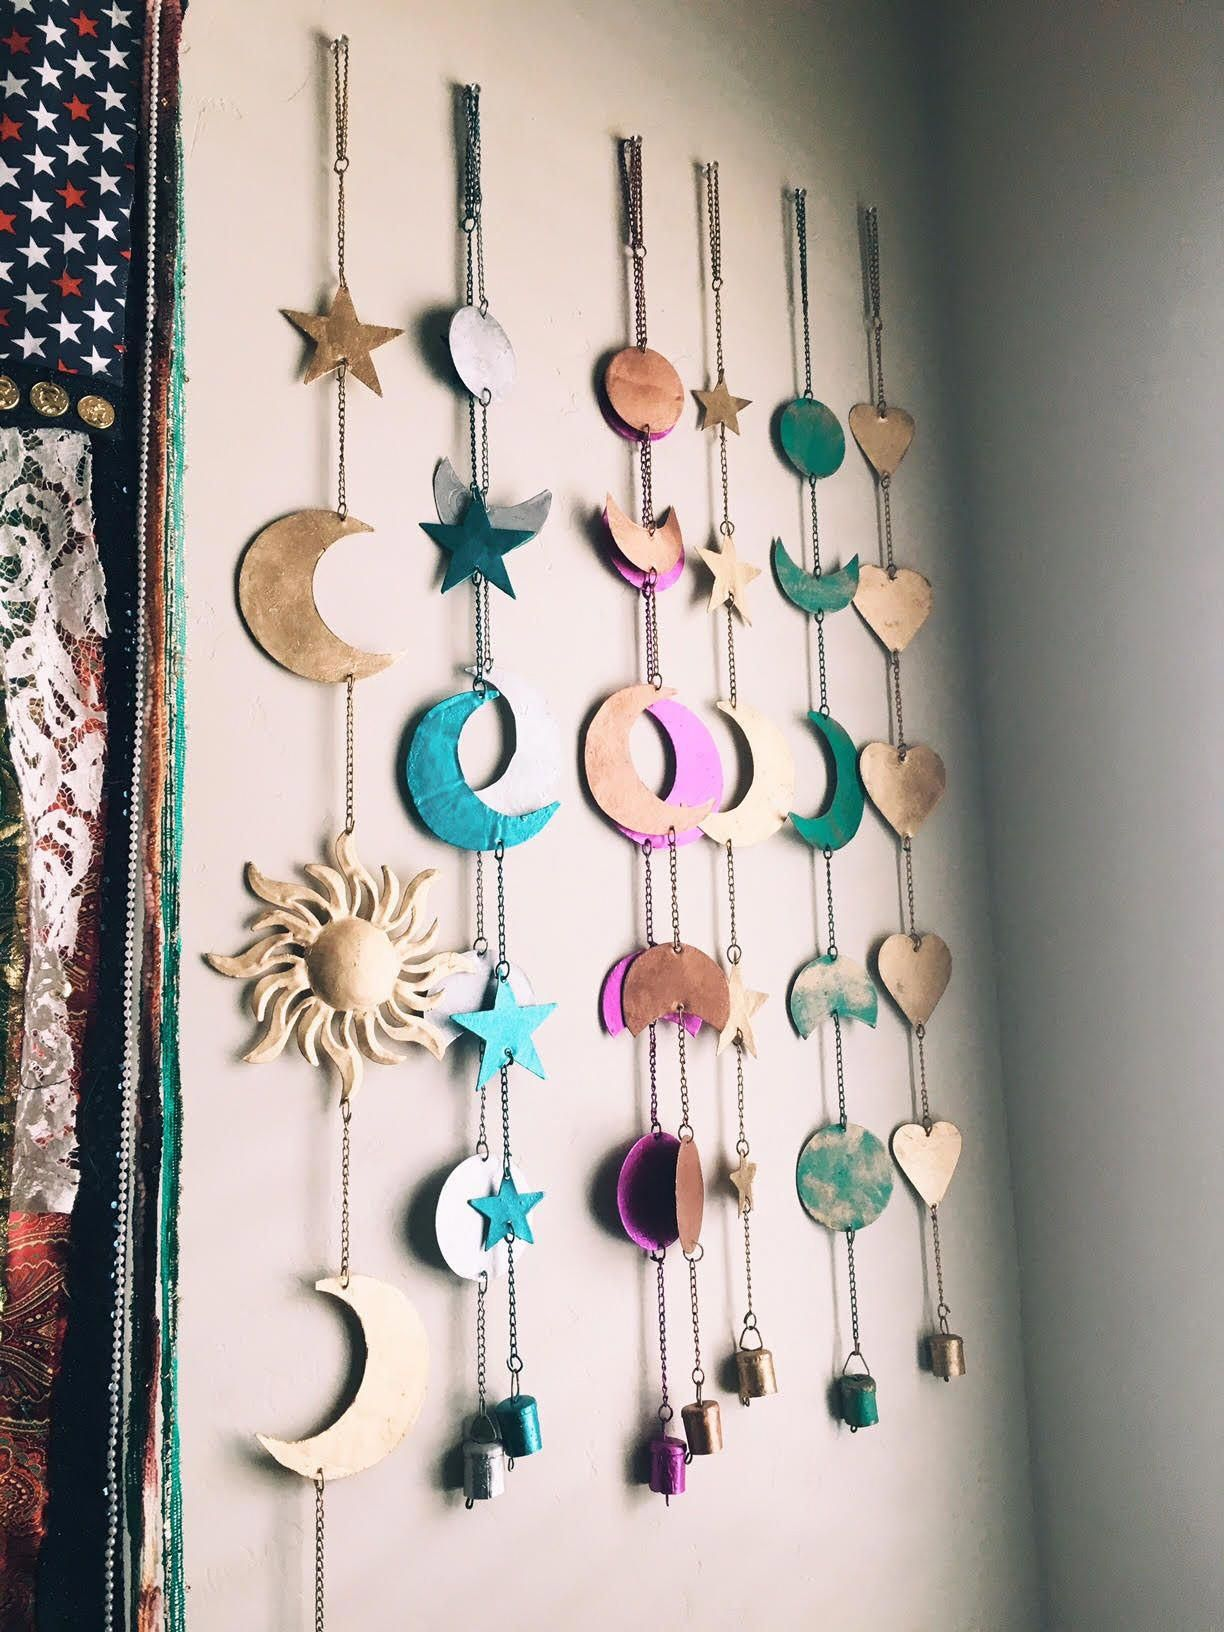 Moon Phases Wall Hanging Decor #littleunicorn